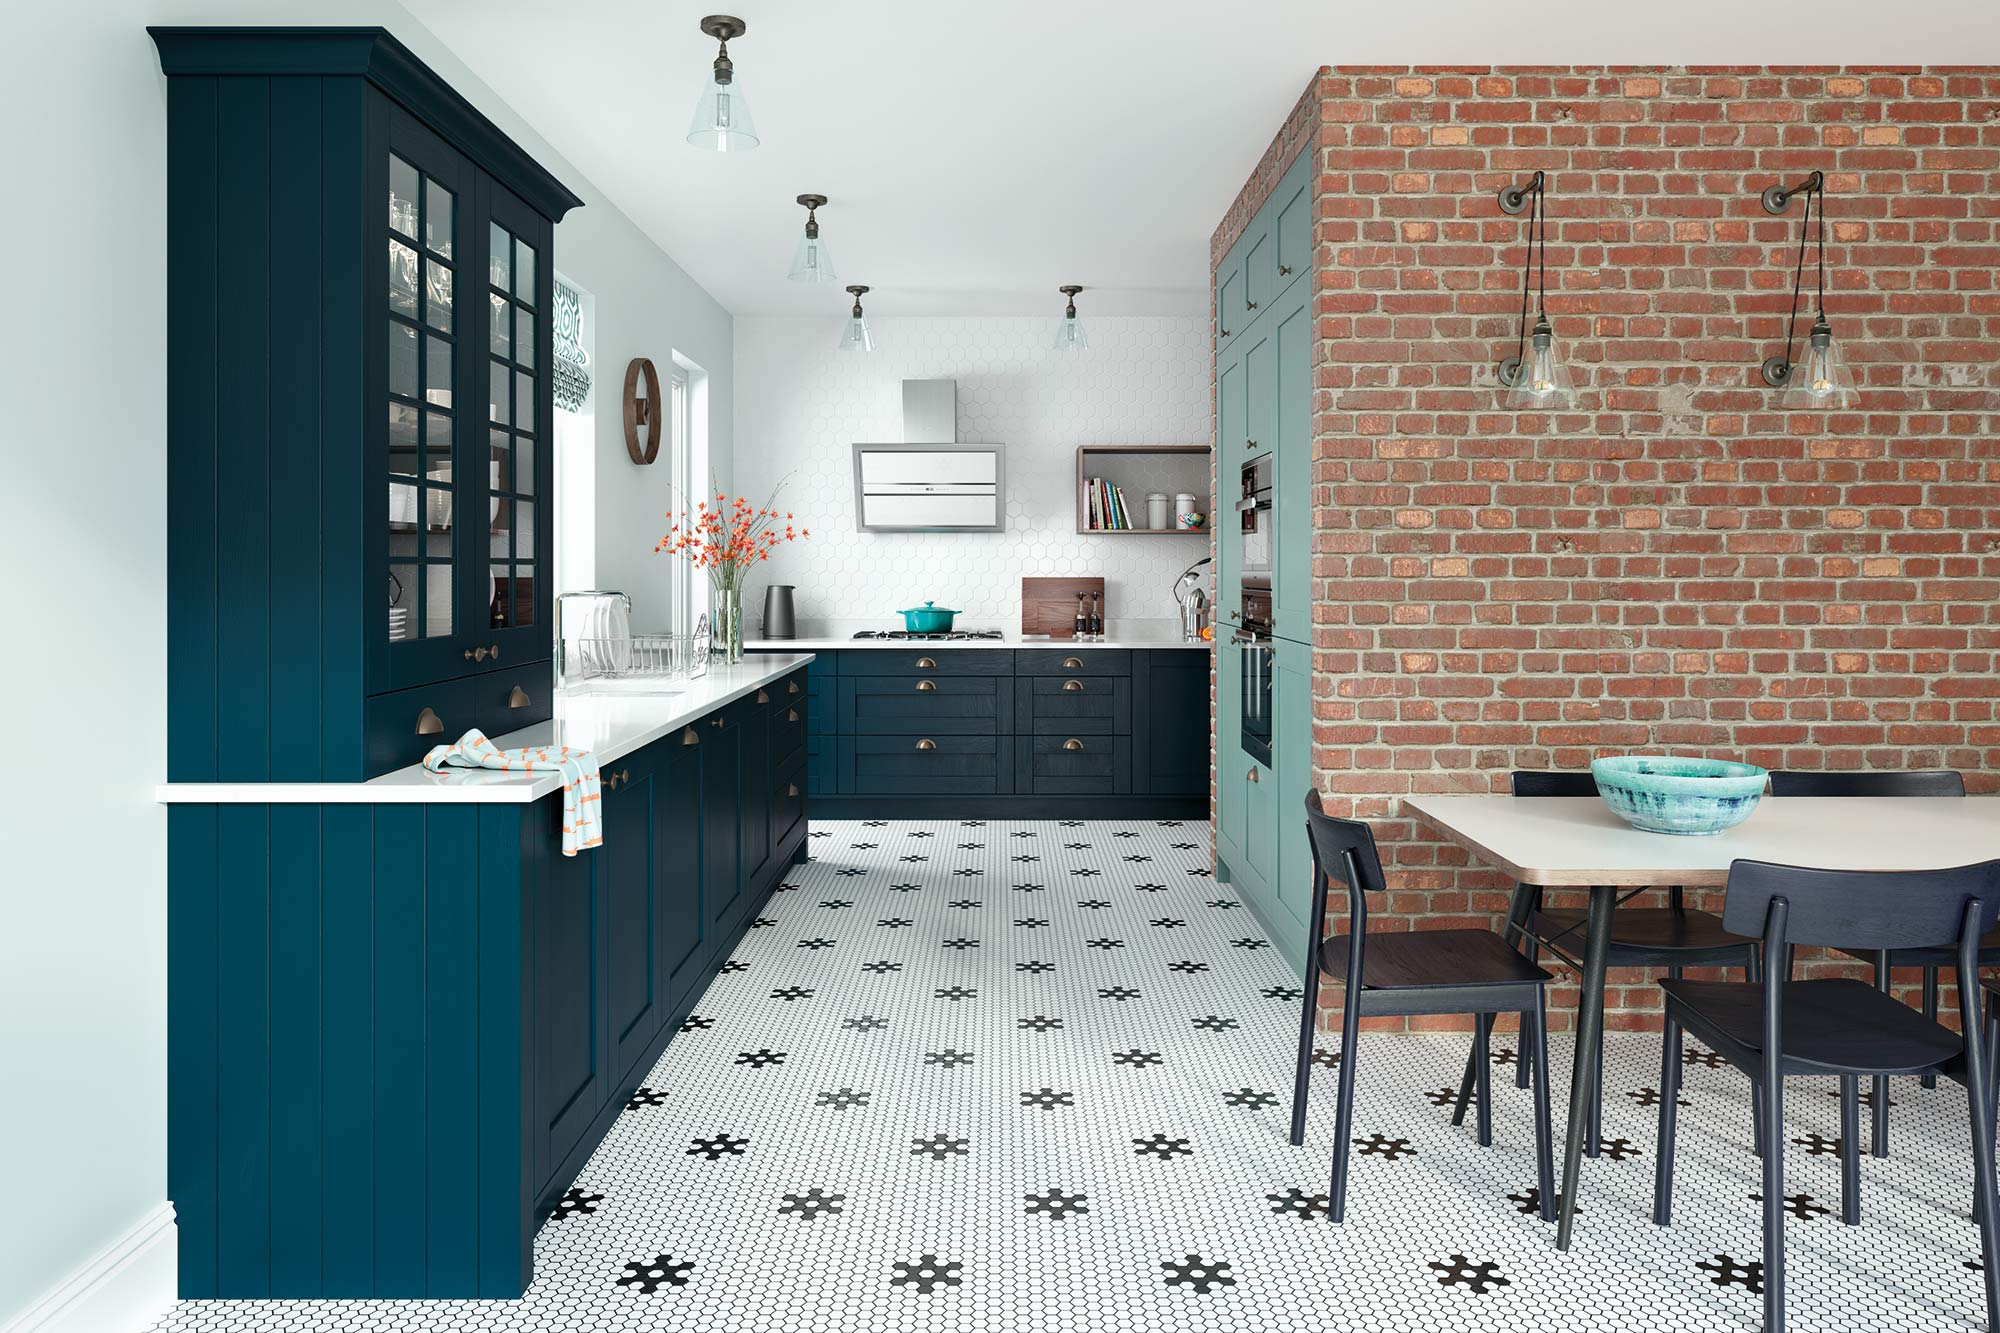 Contemporary style shaker kitchen in marine blue and teal green picture 3